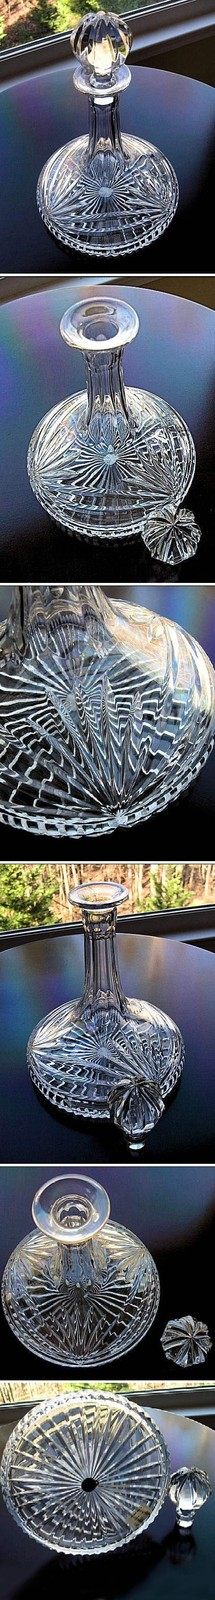 Waterford Marquis Ships Decanter of heavy cut crystal with original box image 2